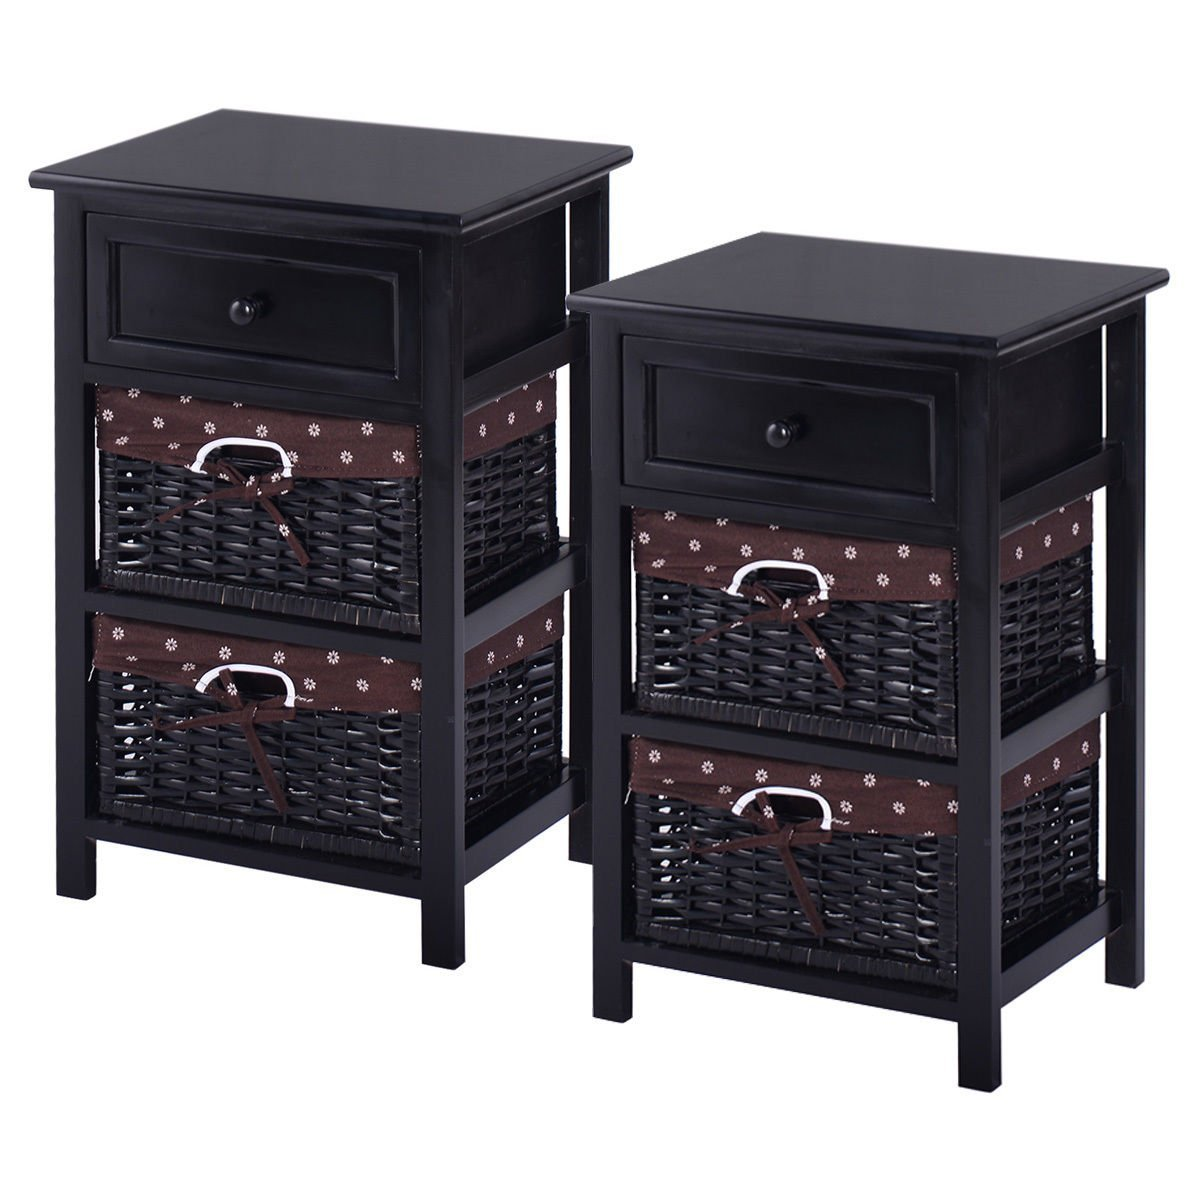 New MTN-G Set OF 2 Night Stand 3 Tier 1 Drawer Bedside End Table Organizer Wood W/2 Basket